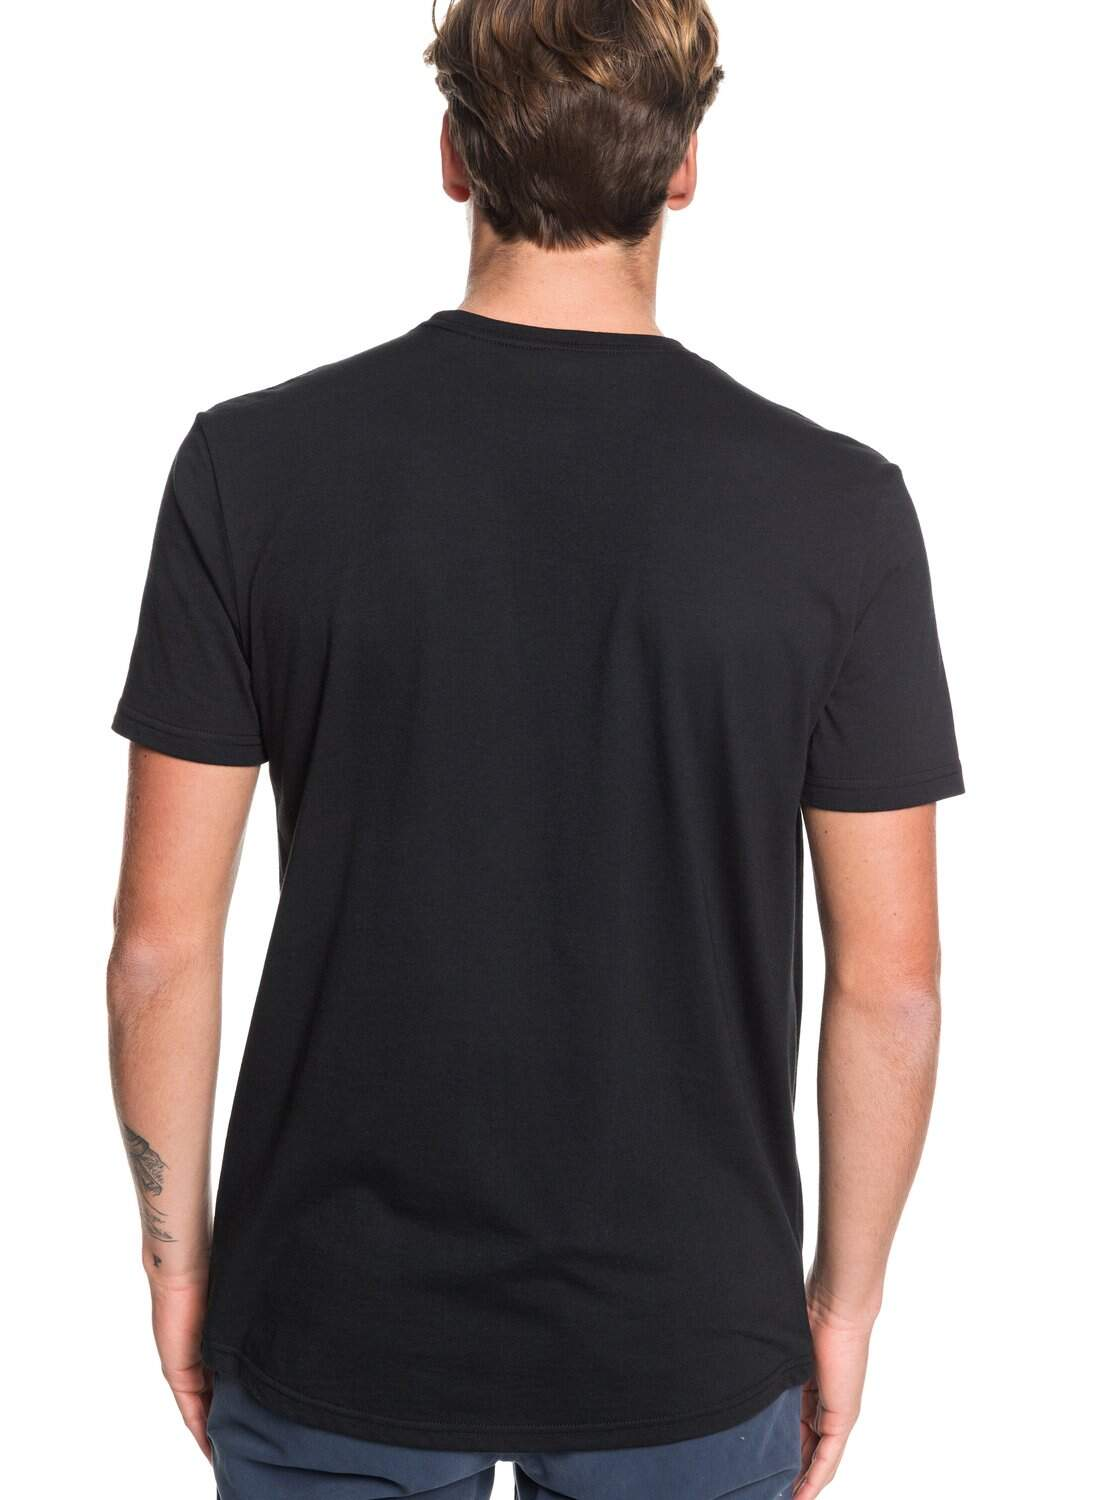 Camiseta Quiksilver Night Tract - Preto